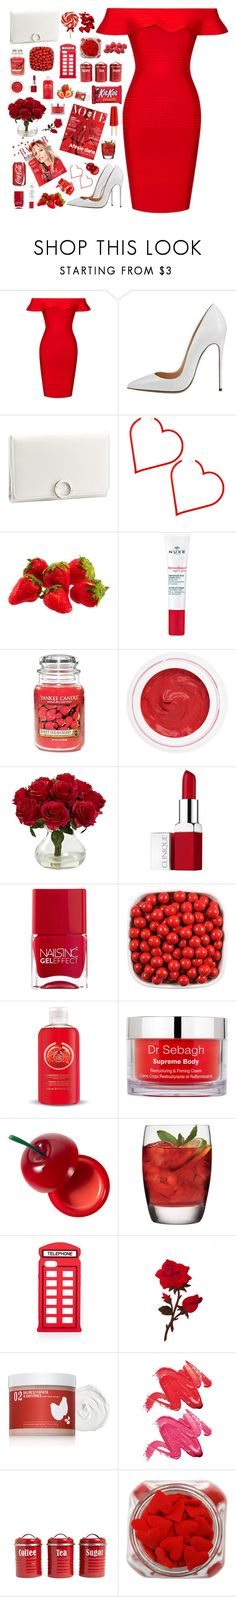 """""""Bloody Rose"""" by kwonrena ❤ liked on Polyvore featuring Posh Girl, Bulgari, Nuxe, Yankee Candle, rms beauty, Nearly Natural, Clinique, Nails Inc., The Body Shop and Dr. Sebagh"""